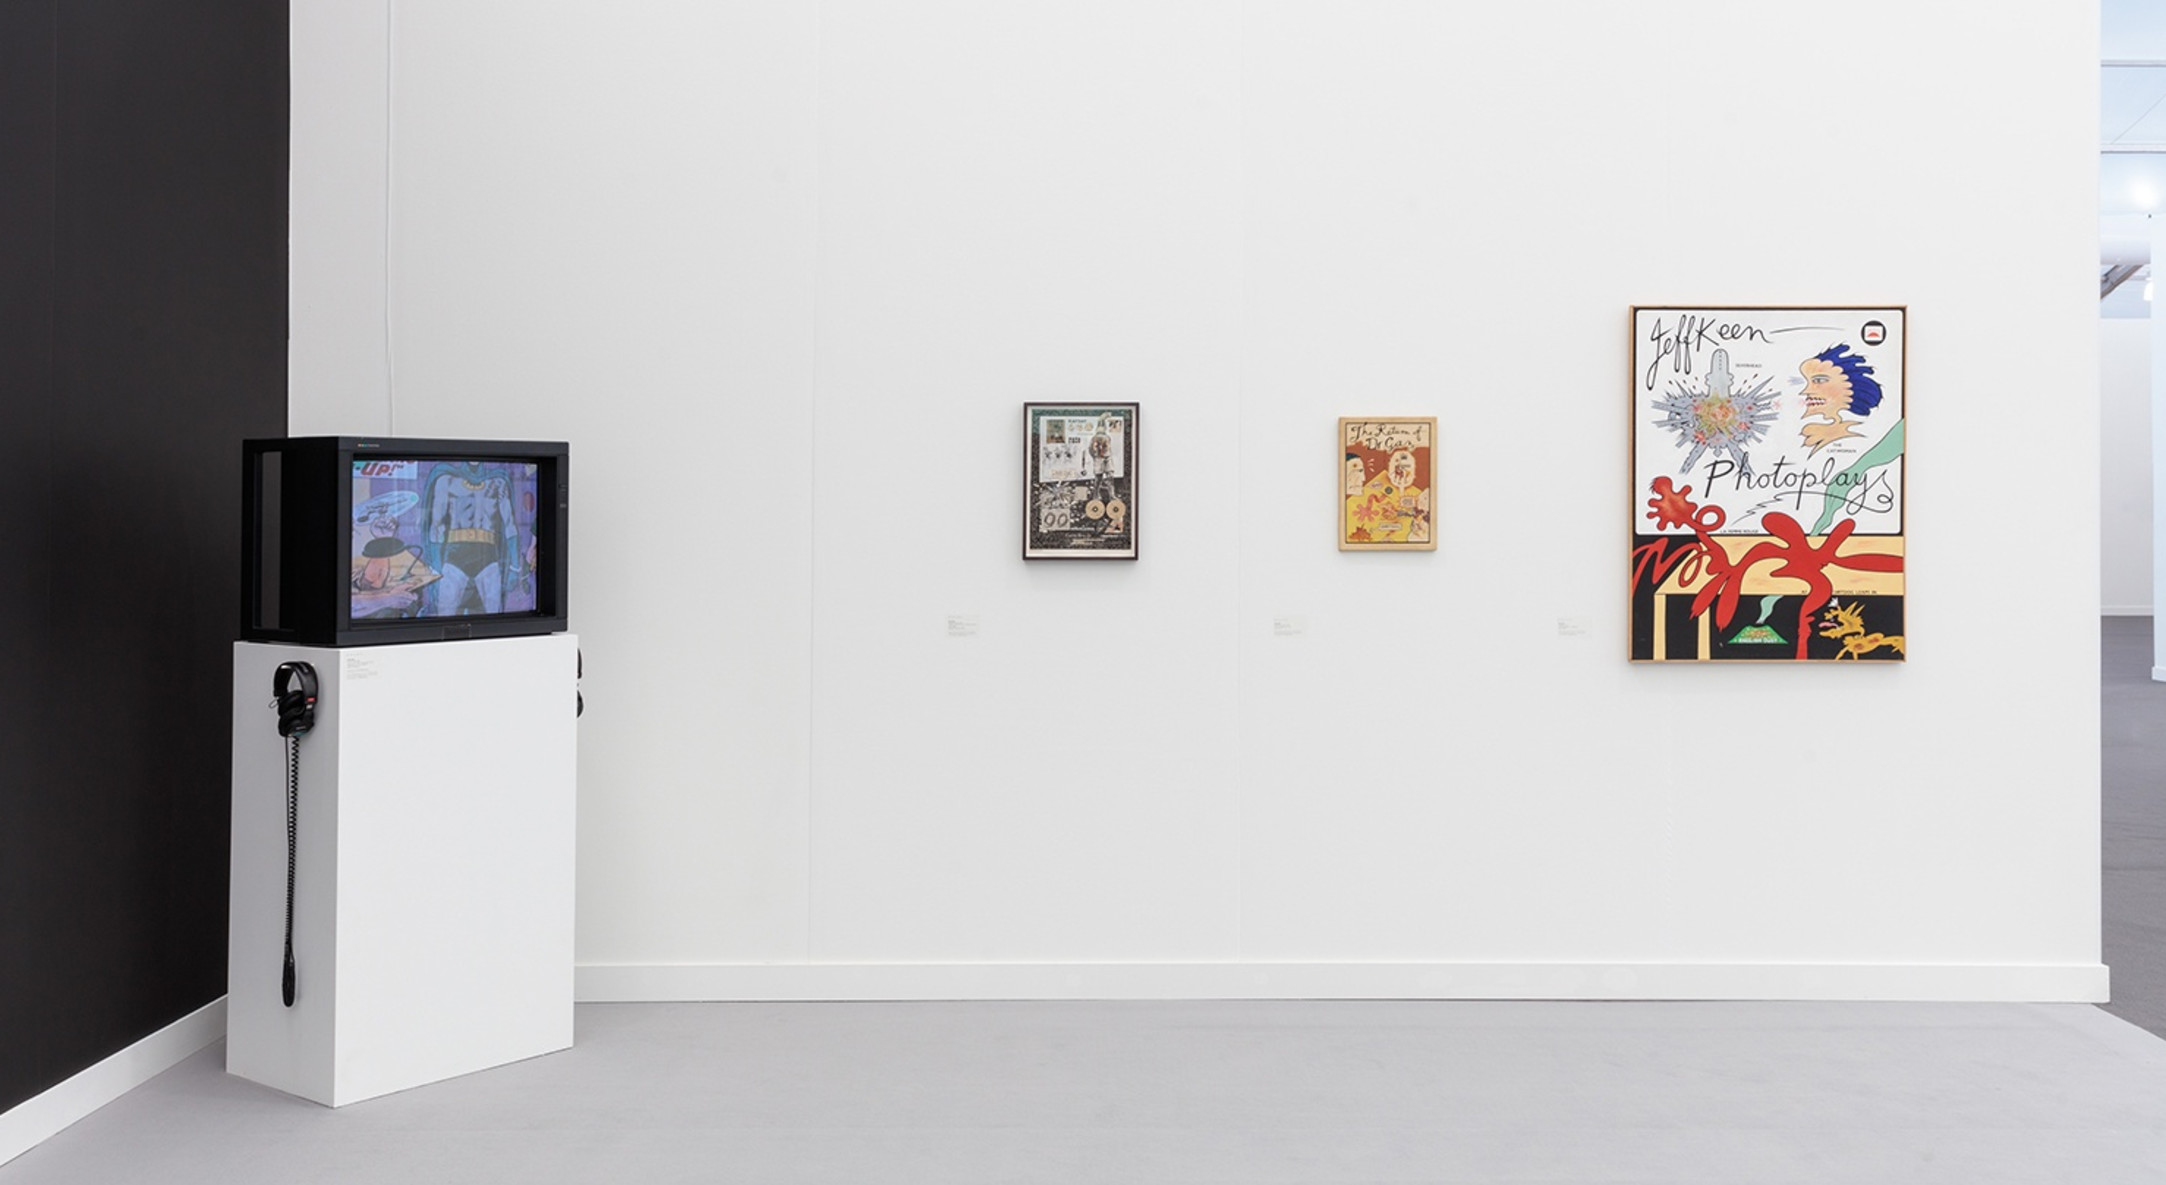 Installation view of Hales Gallery booth, Spotlight: Jeff Keen, at Frieze New York 2018